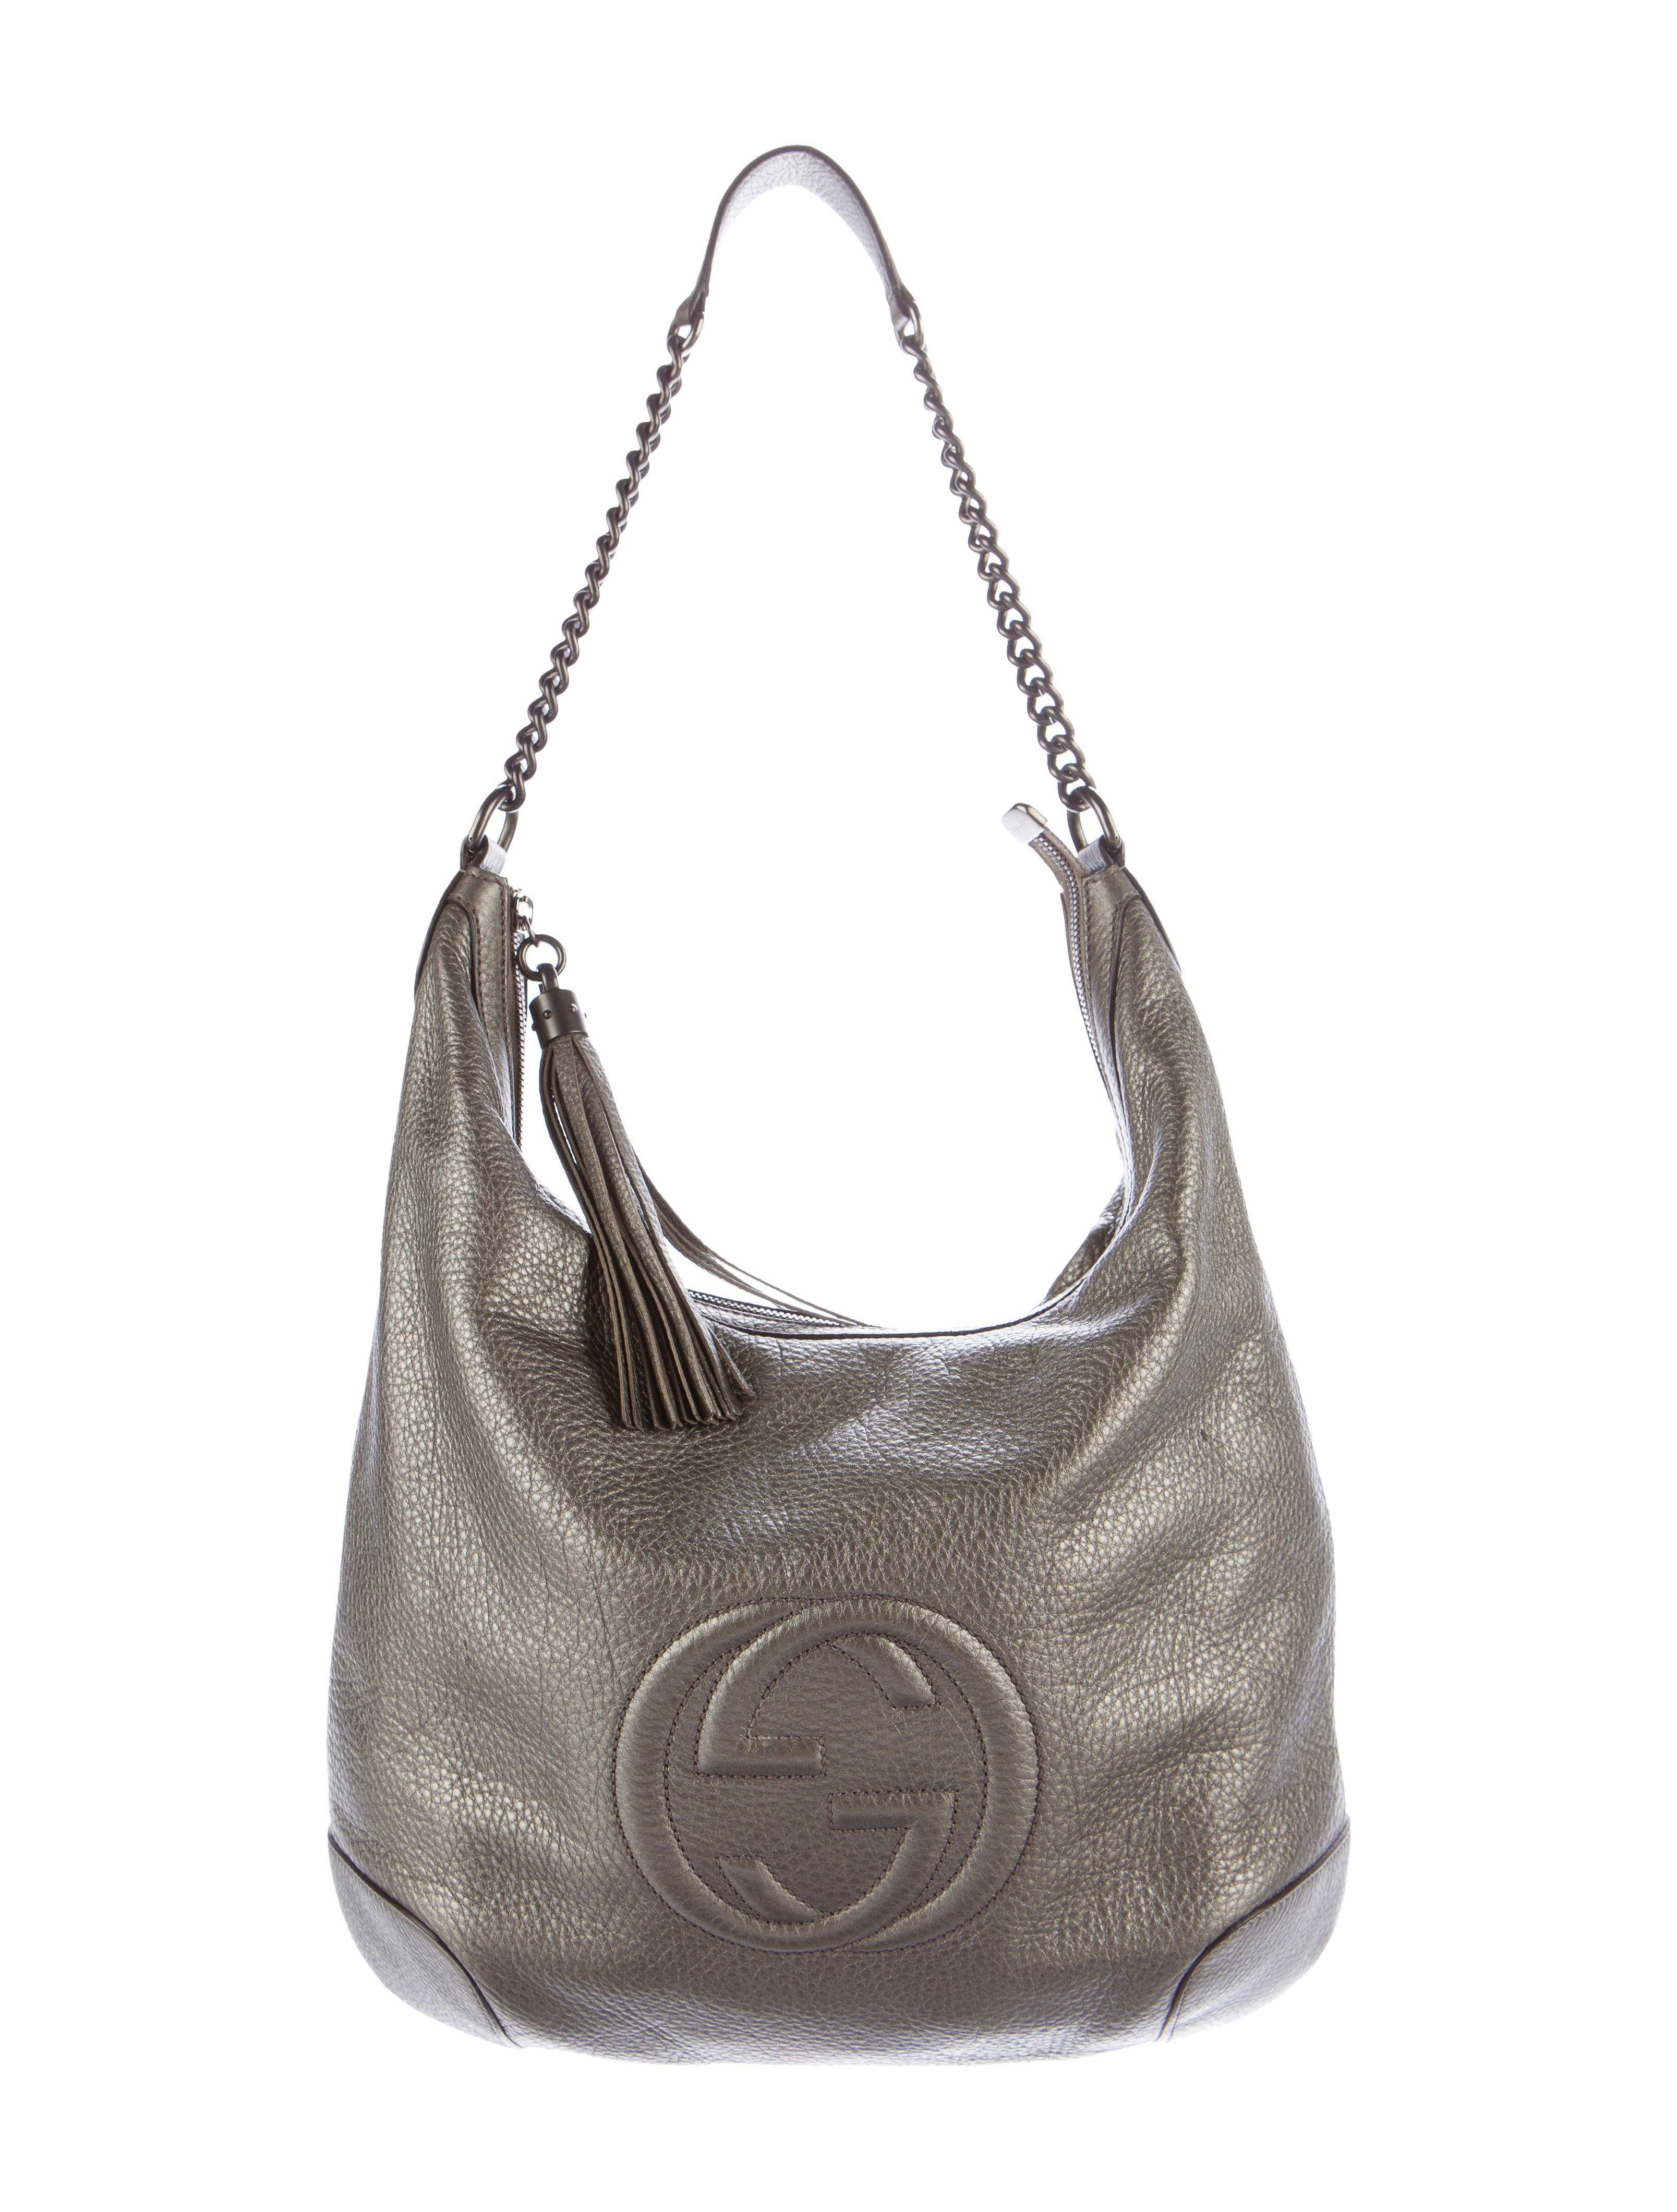 462c2d5d09ab Gucci Soho Chain Hobo Bags | Stanford Center for Opportunity Policy ...